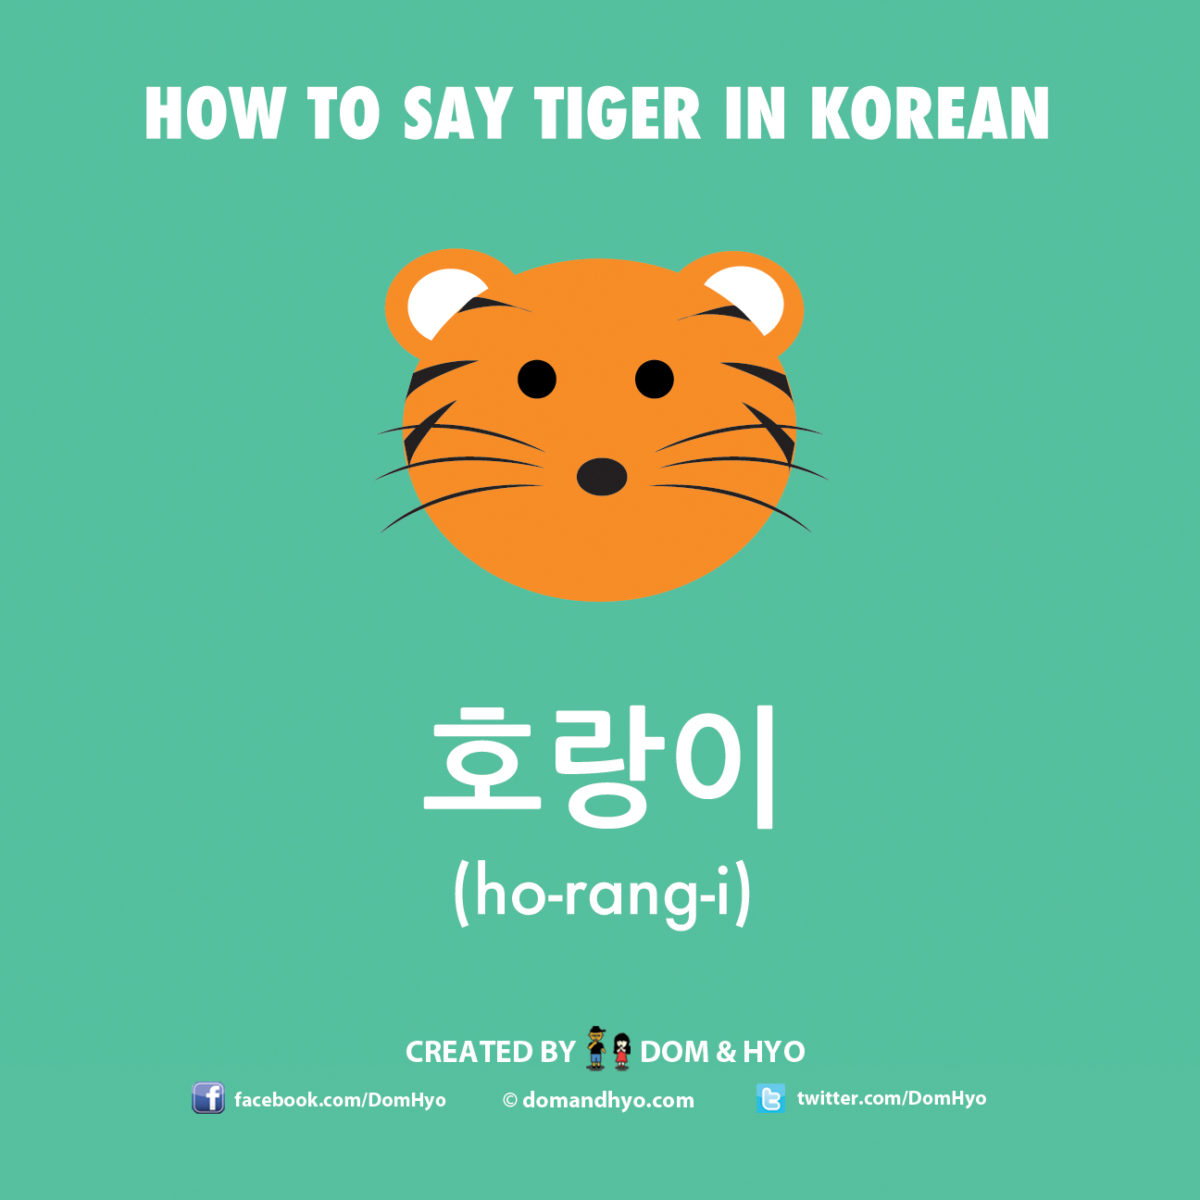 How to say tiger in Korean